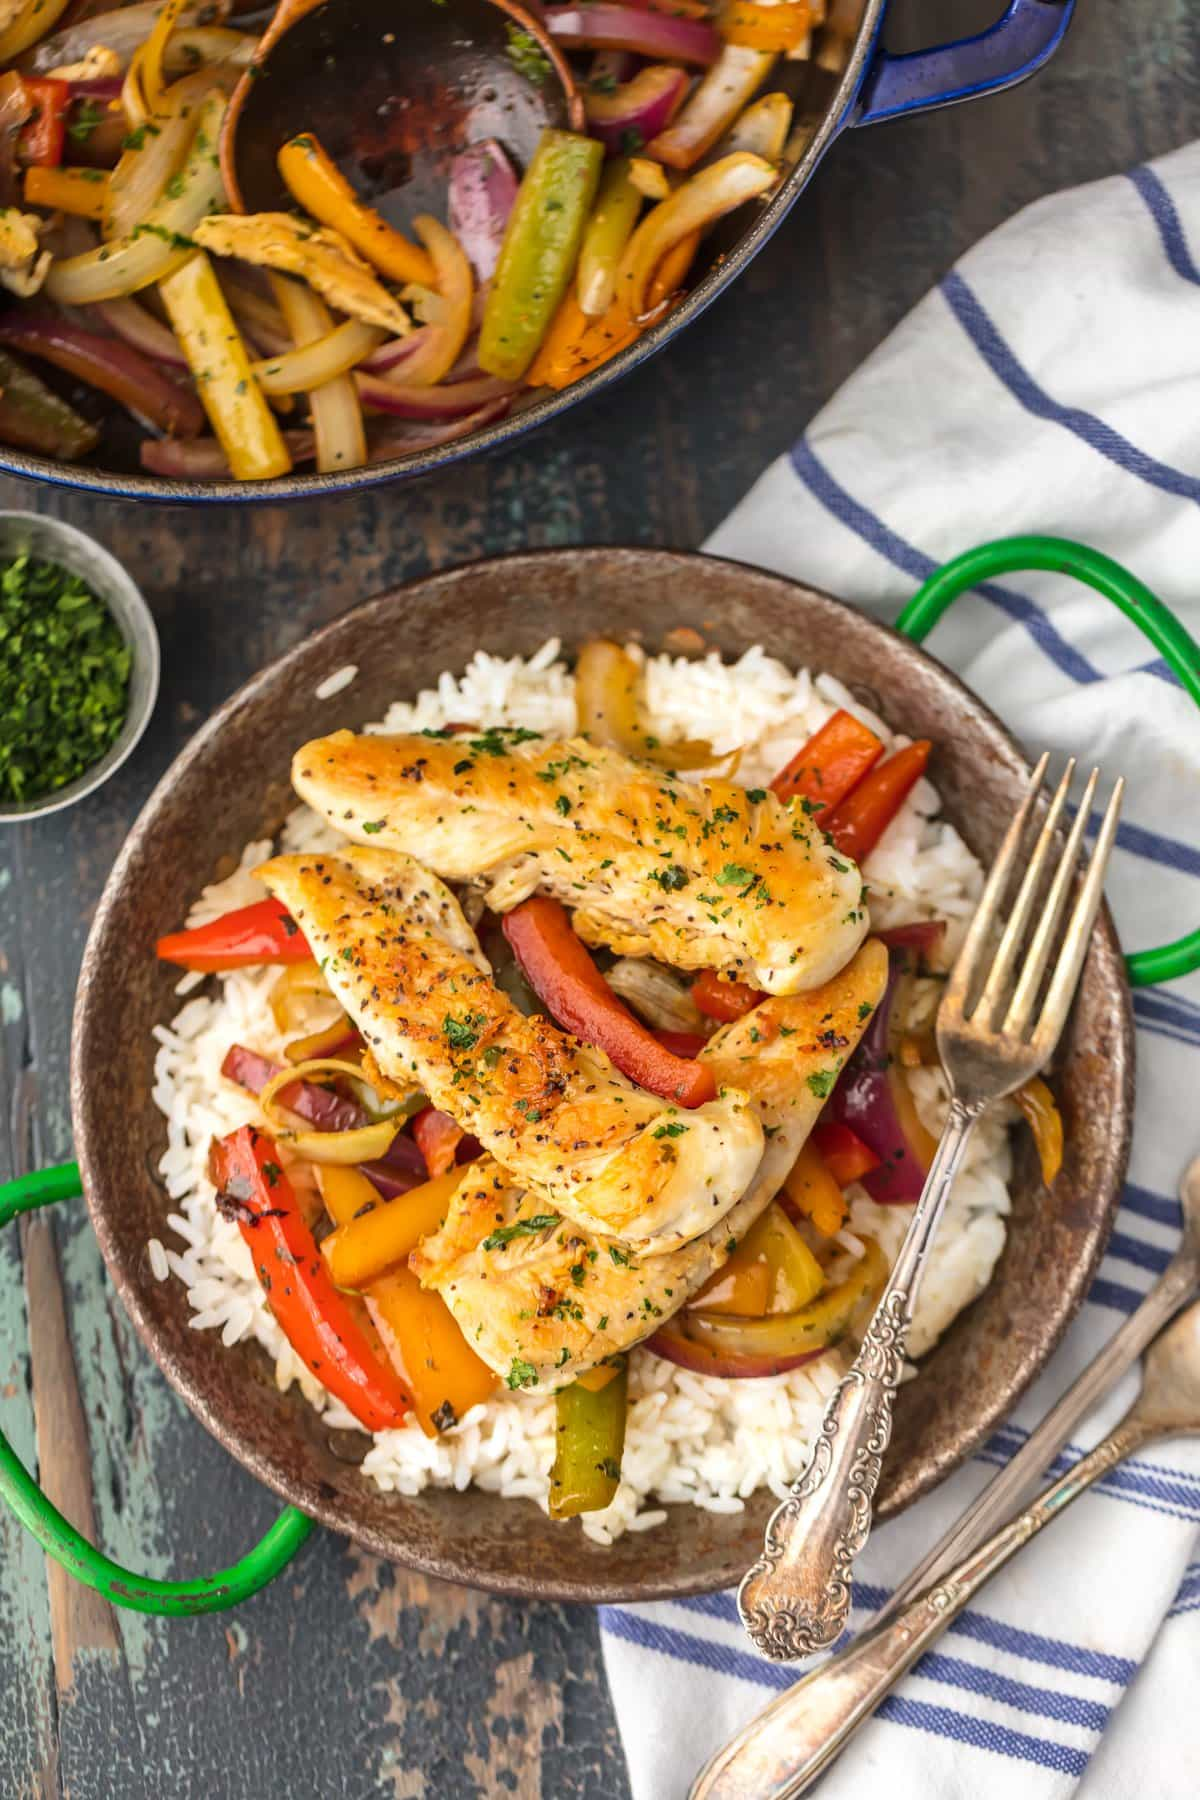 This CILANTRO CHICKEN STIR-FRY is an easy, delicious, and HEALTHY dinner you can make in just minutes! So much flavor and none of the fuss. Loaded with chicken, peppers, onions, and cilantro...yum!